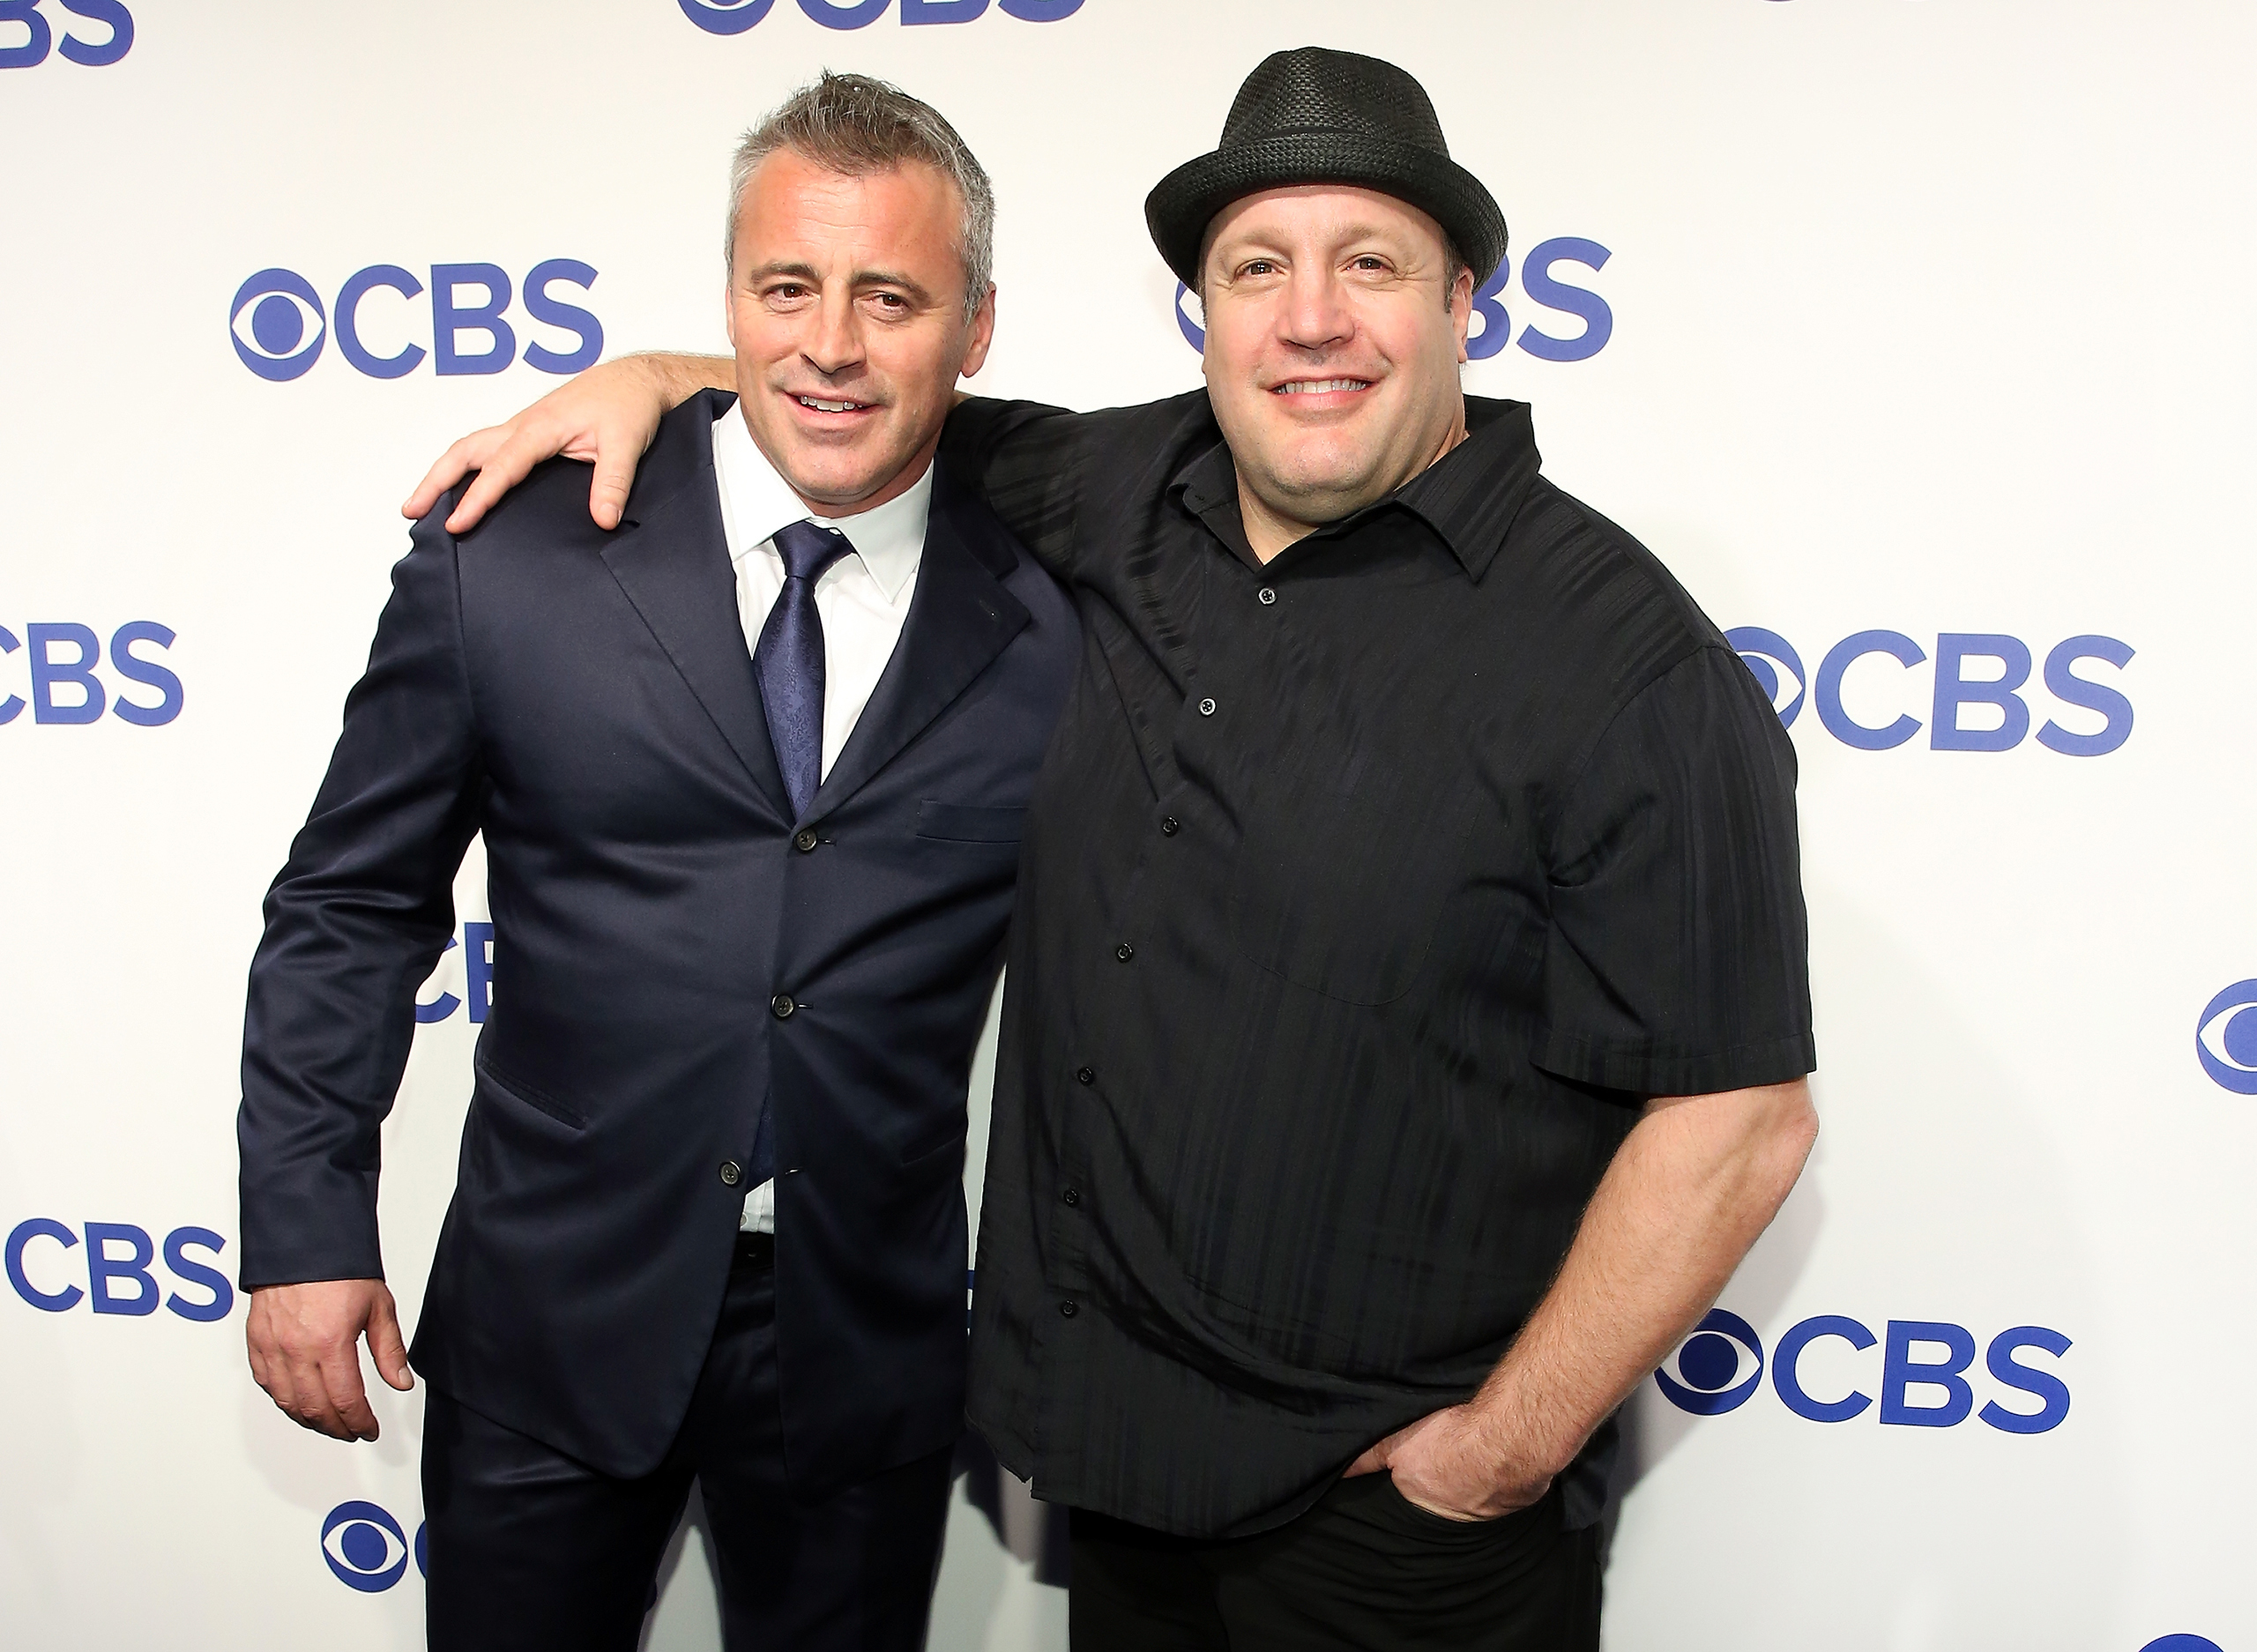 Matt LeBlanc and Kevin James attend the 2016 CBS Upfront at Oak Room in New York City on May 18, 2016.